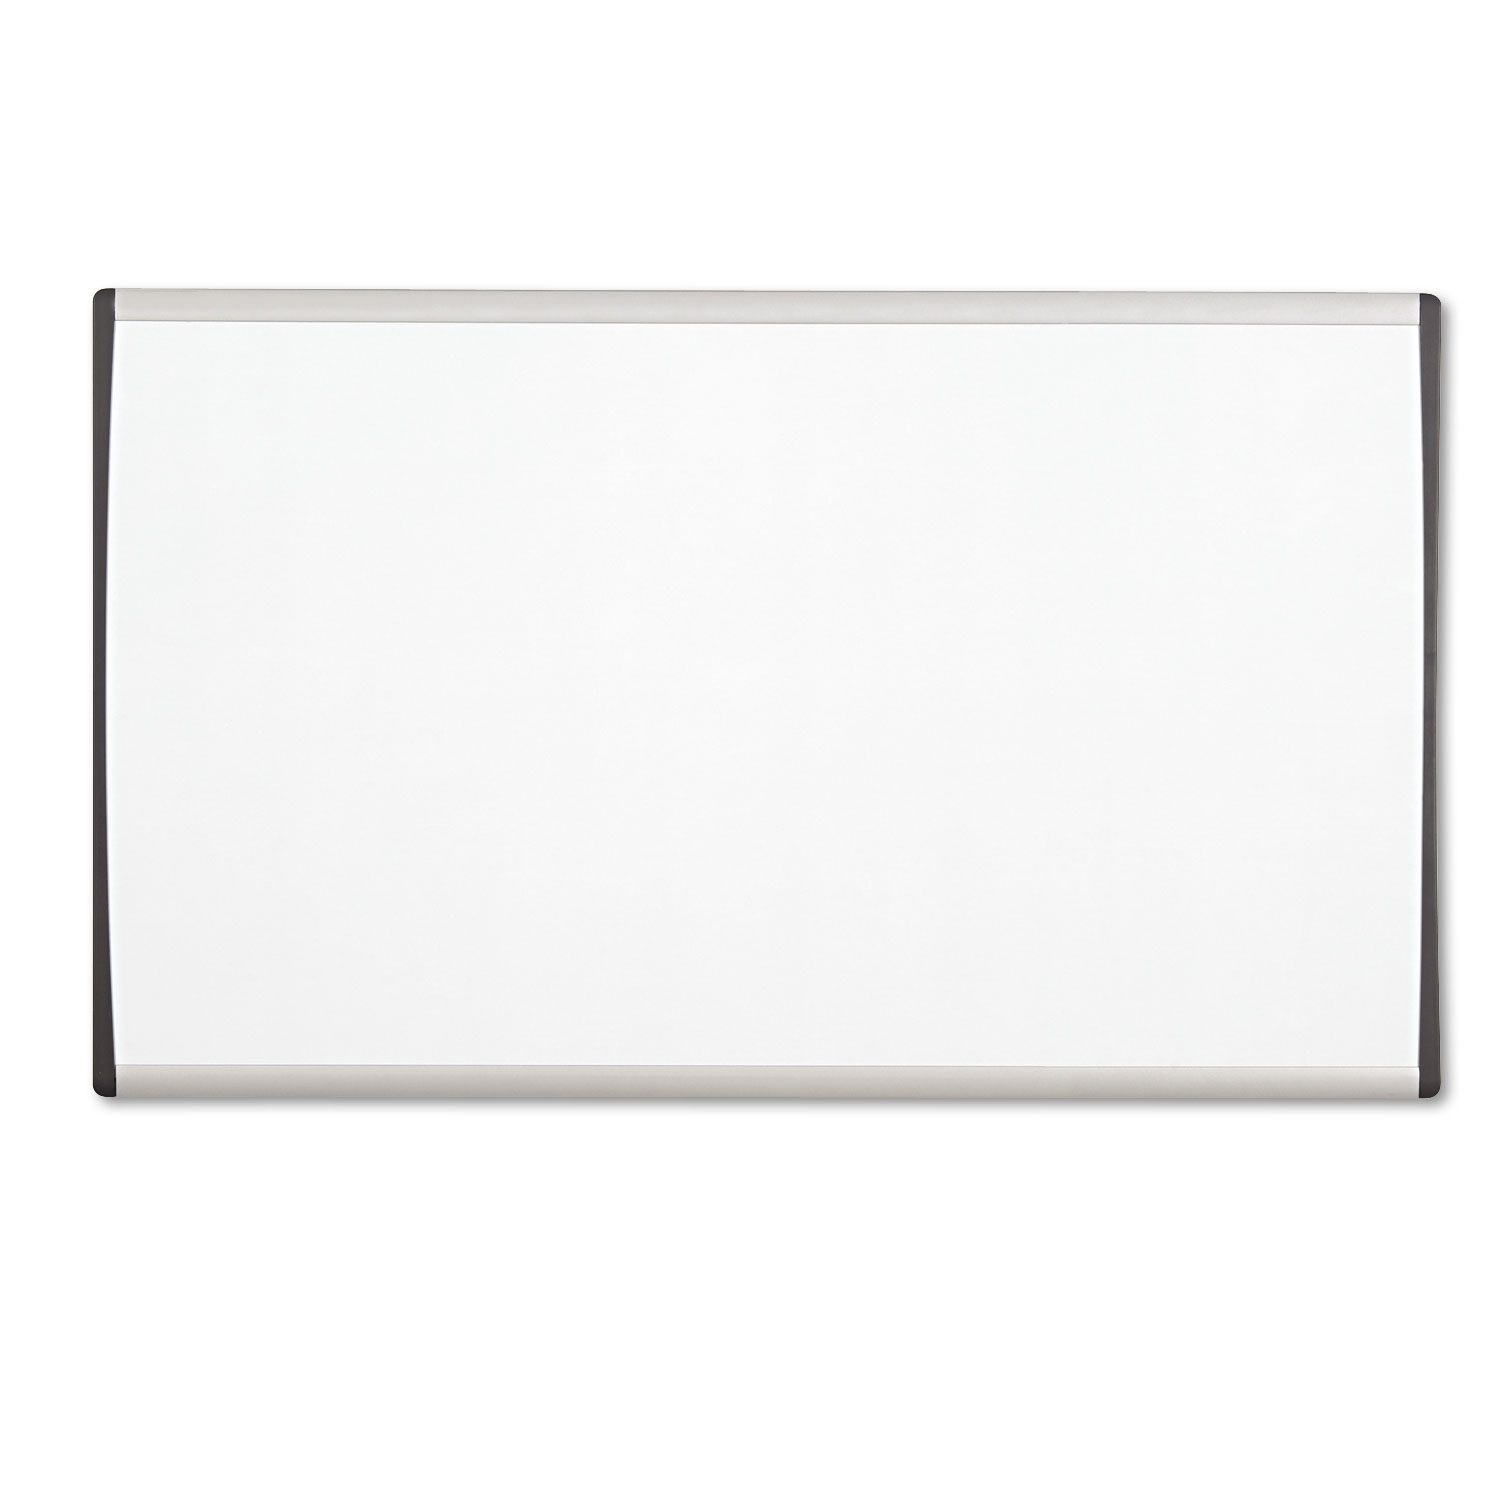 Picture of Magnetic Dry-Erase Board, Steel, 18 x 30, White Surface, Silver Aluminum Frame